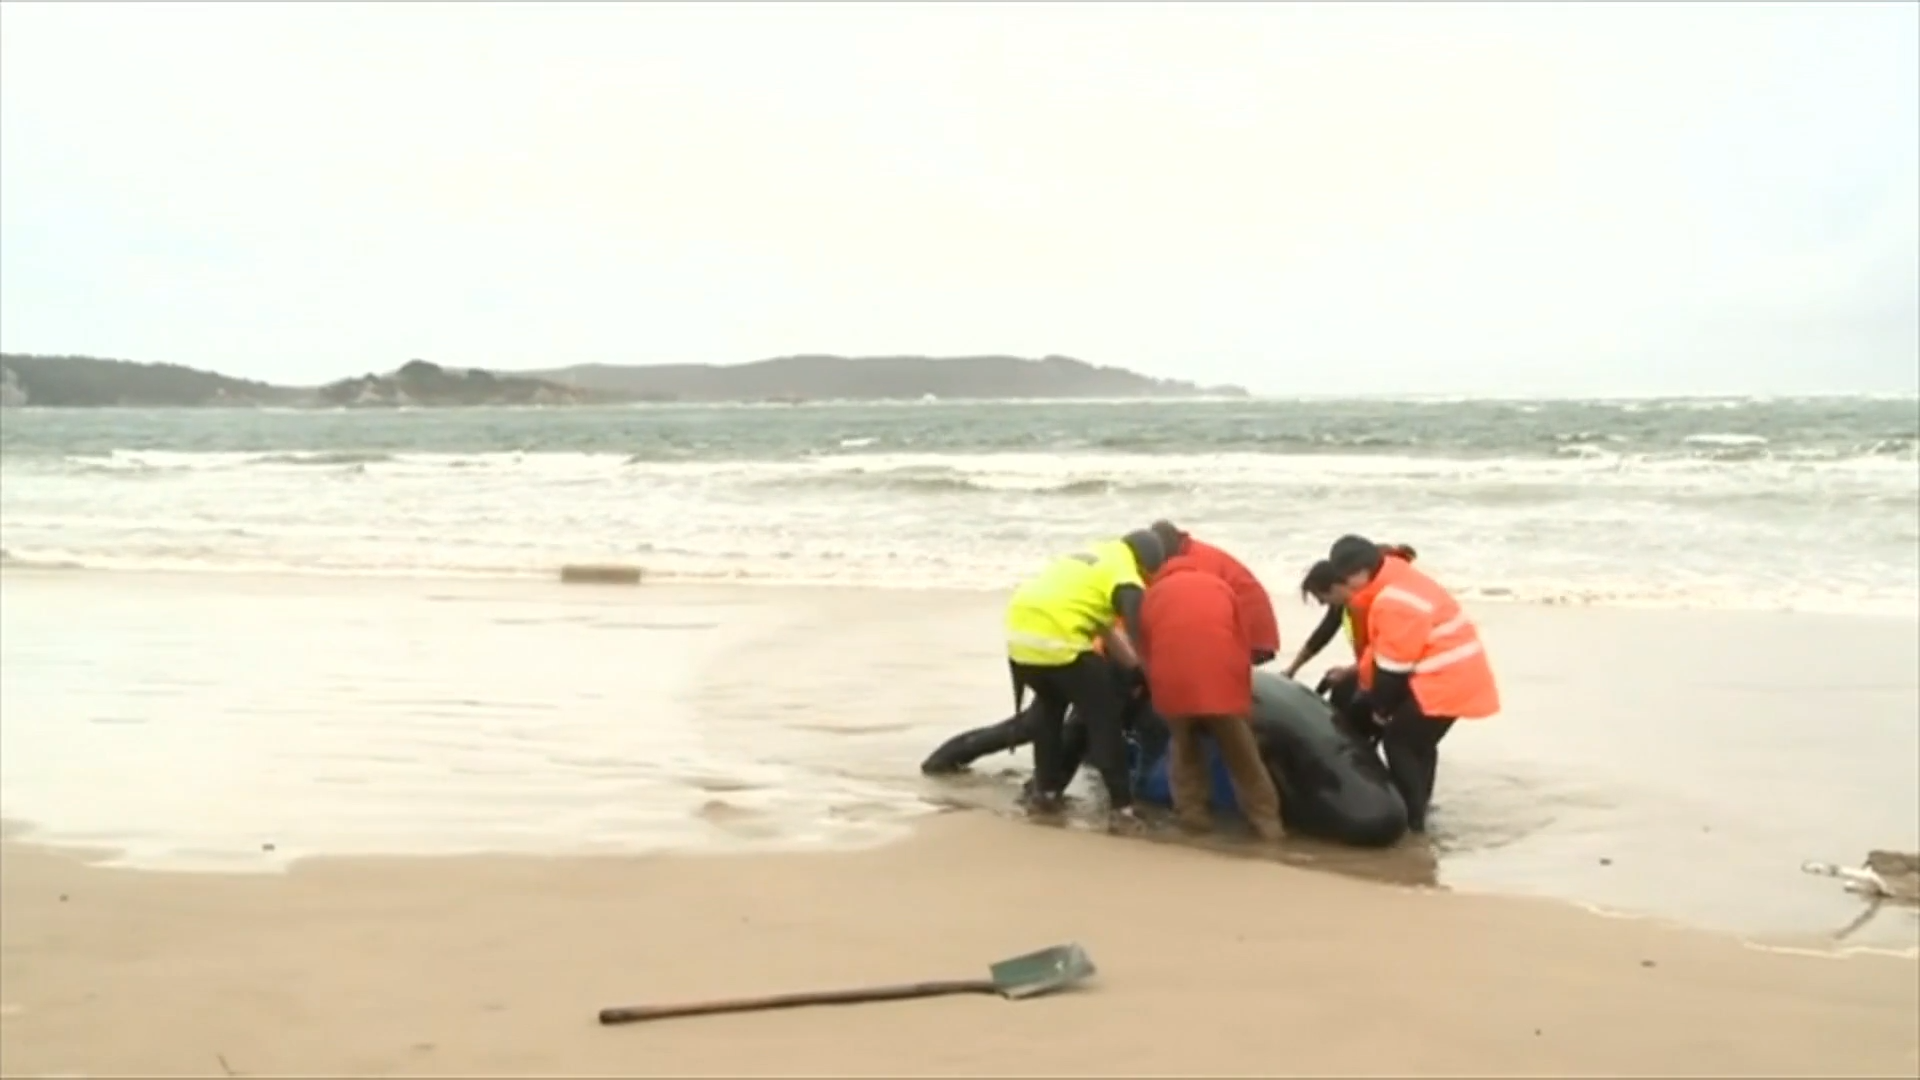 Almost 400 whales die in Australia's worst stranding - channel 4